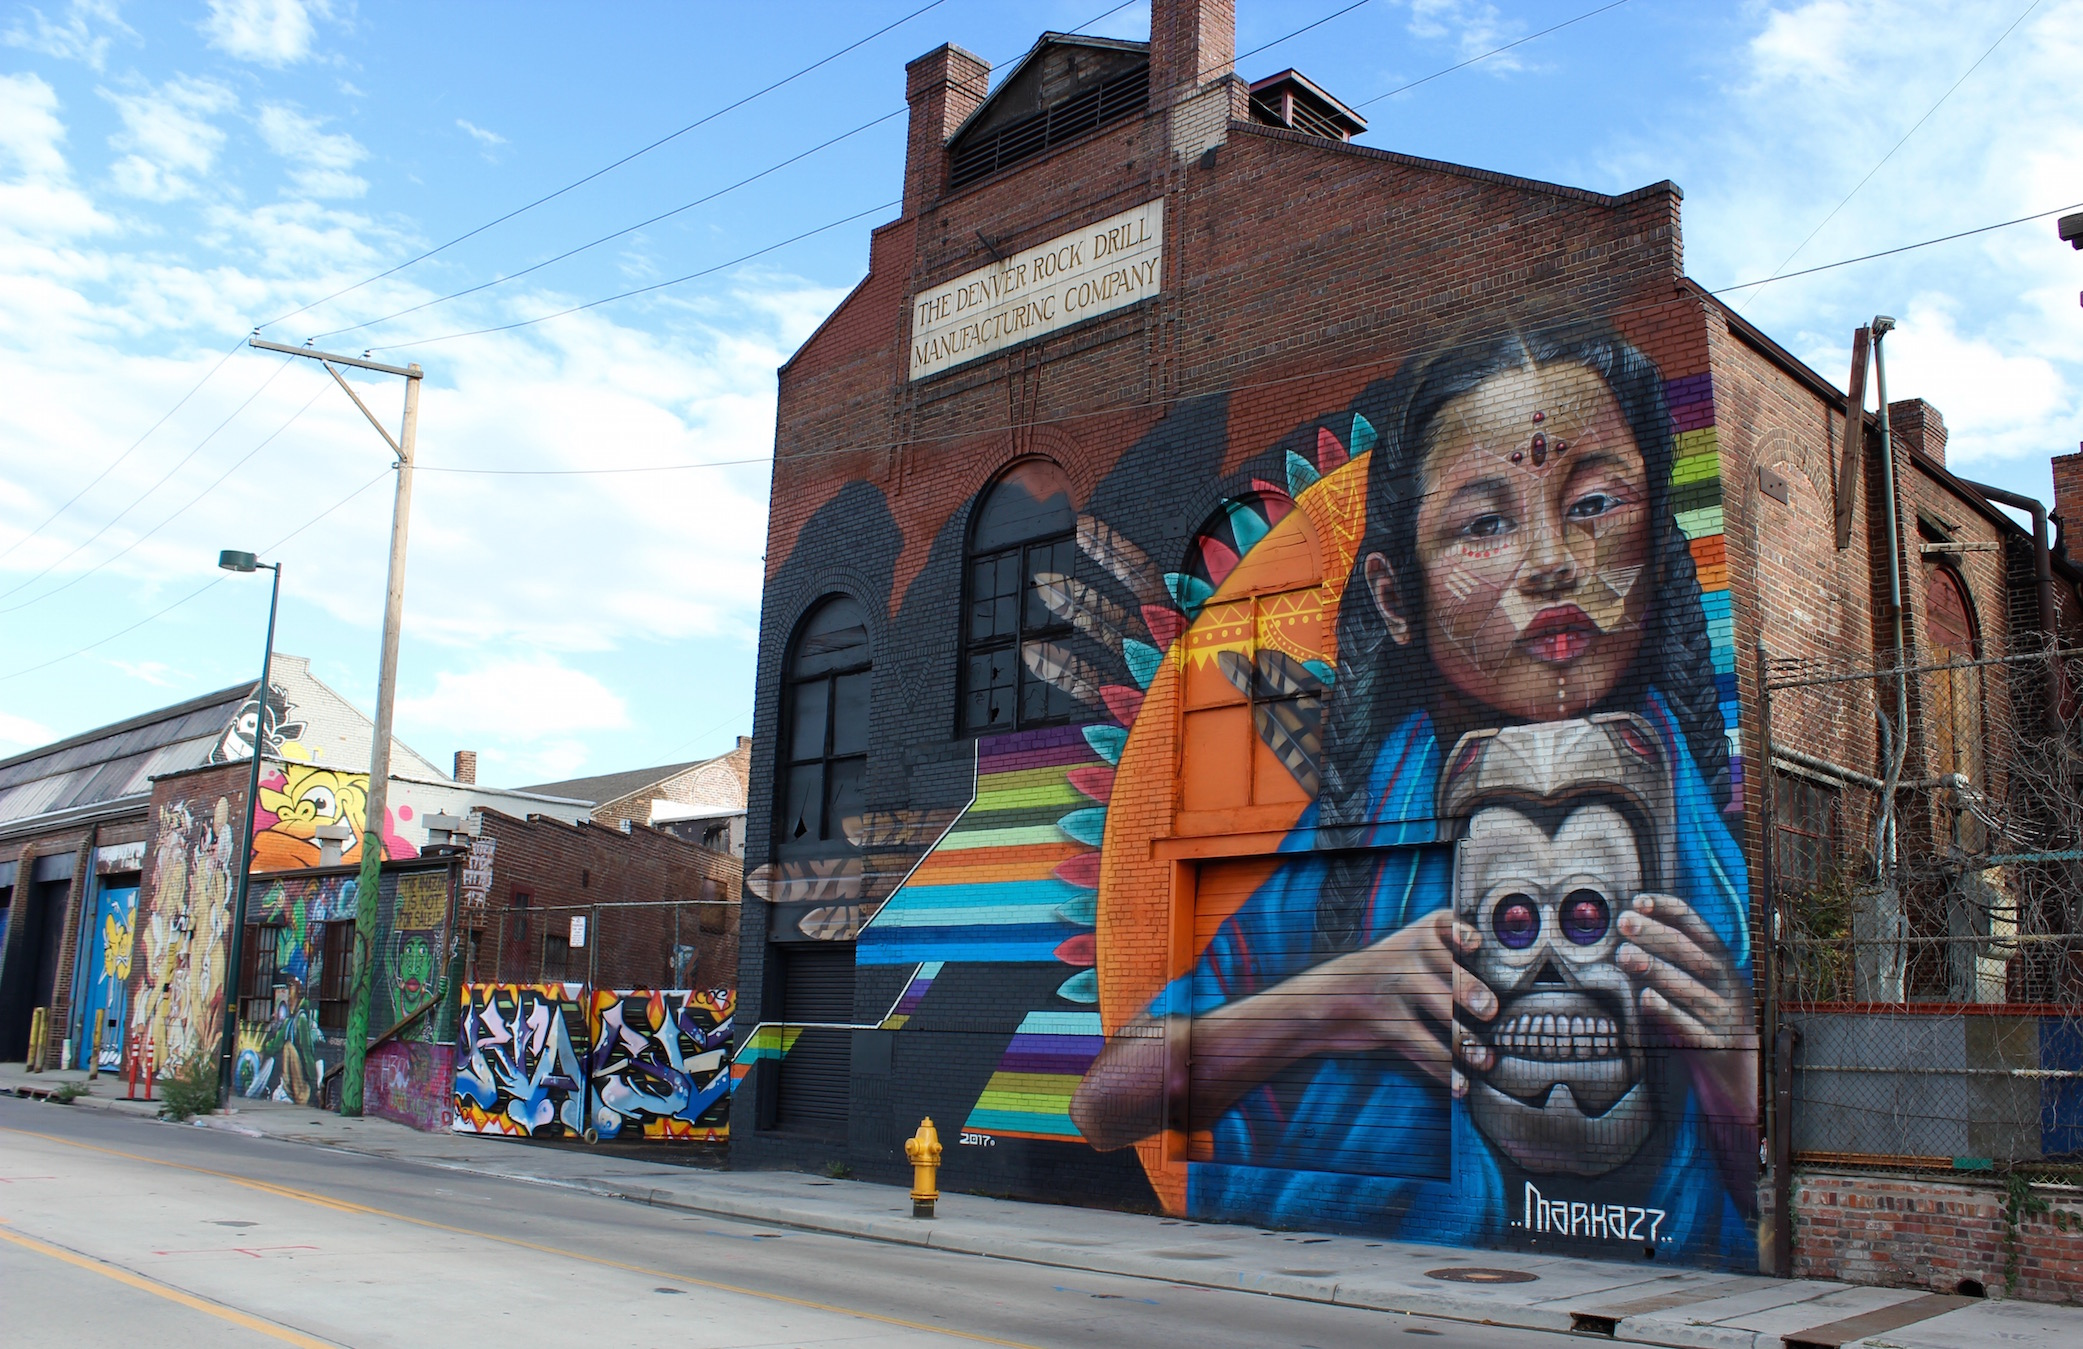 Marka27, Cori Anderson, 303 Magazine, Crush 2017, street art denver